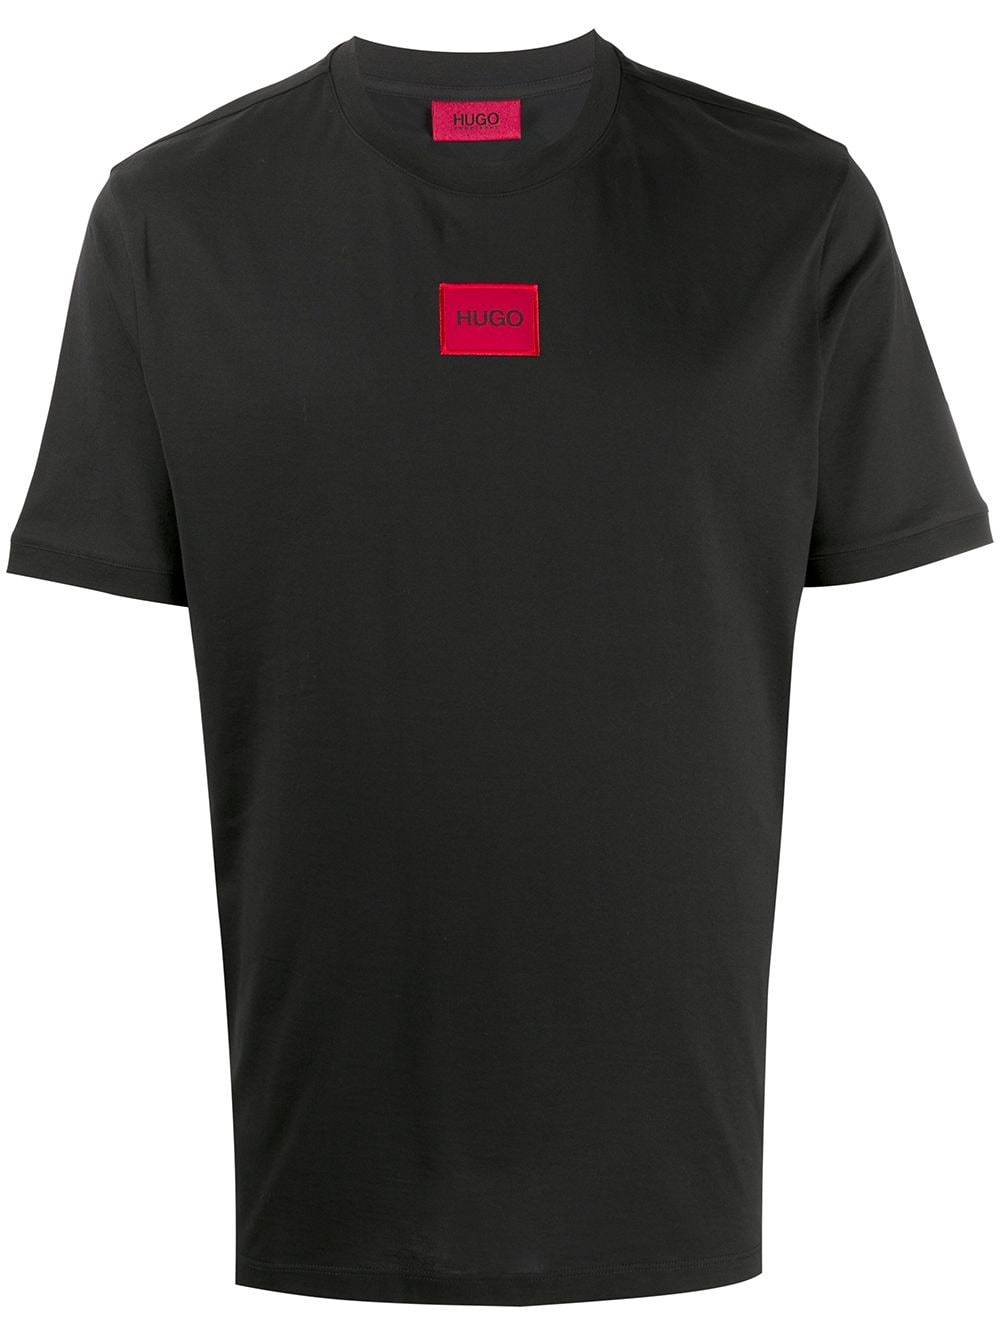 HUGO Red Square Logo T-Shirt Black